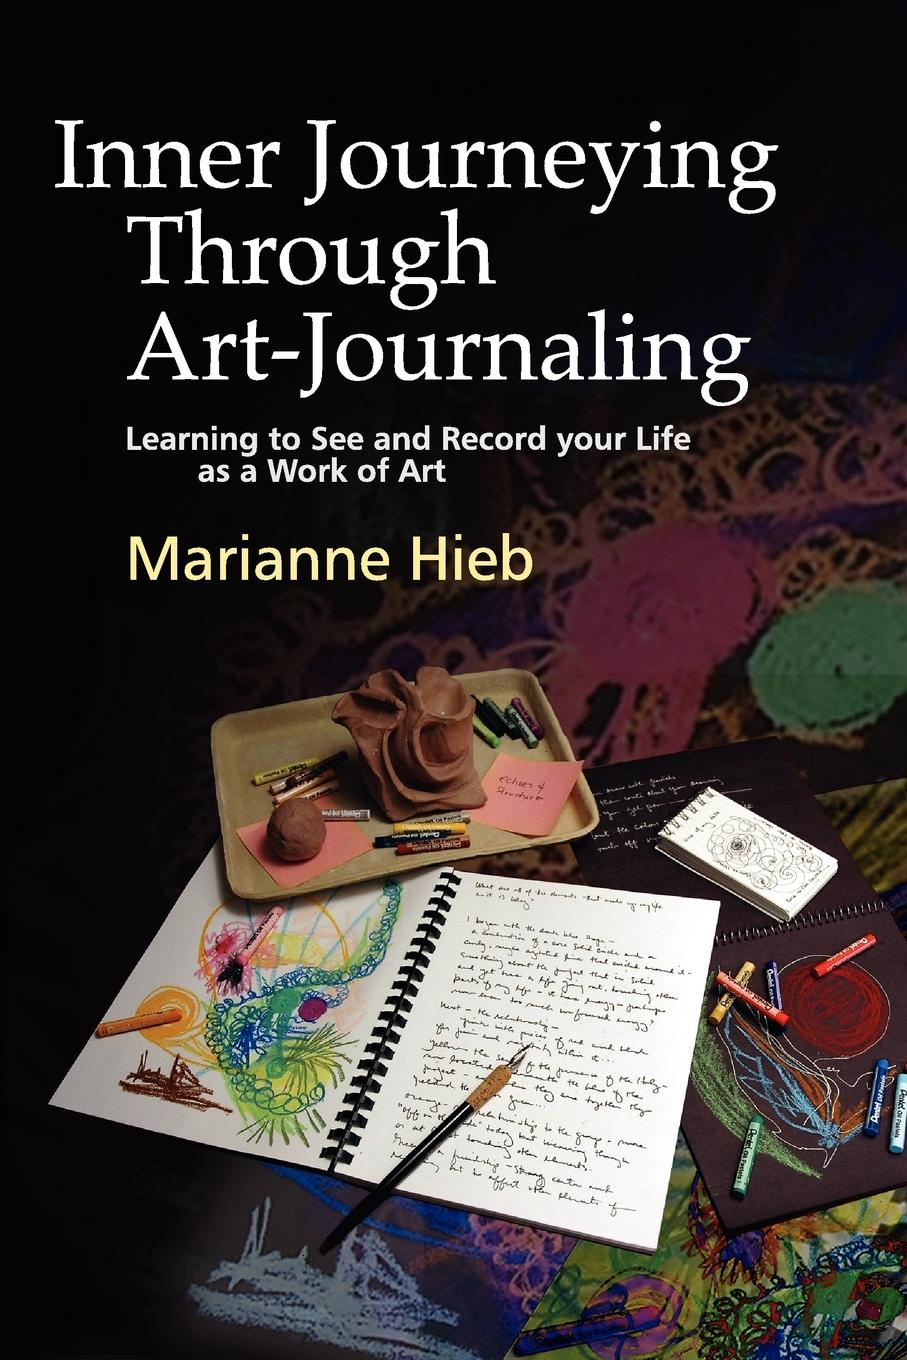 Фото - Marianne Hieb Inner Journeying Through Art-Journaling. Learning to See and Record Your Life as a Work of Art see through shirt